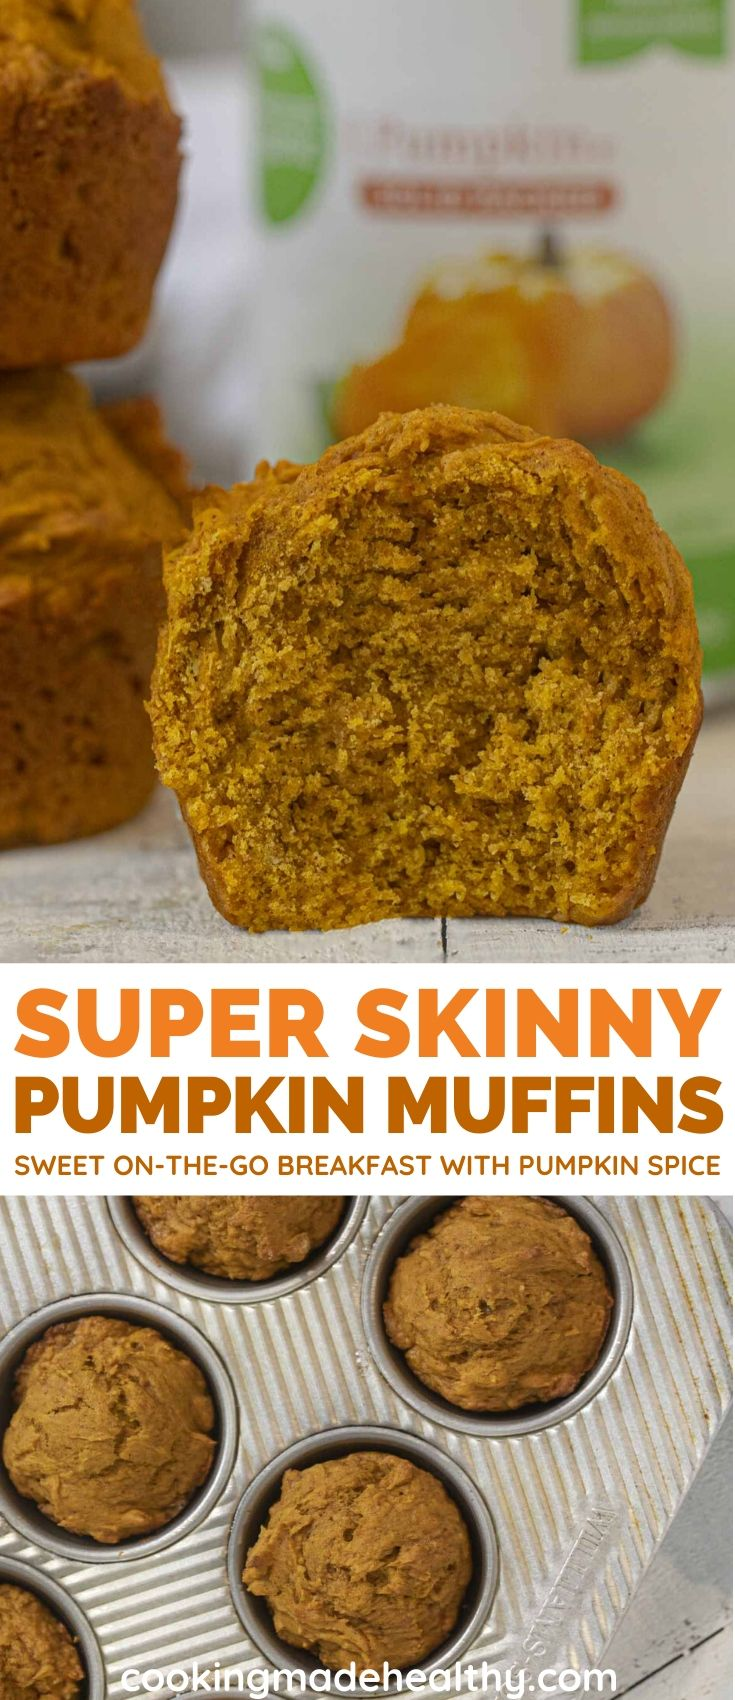 Super Skinny Pumpkin Muffins Cooking Made Healthy